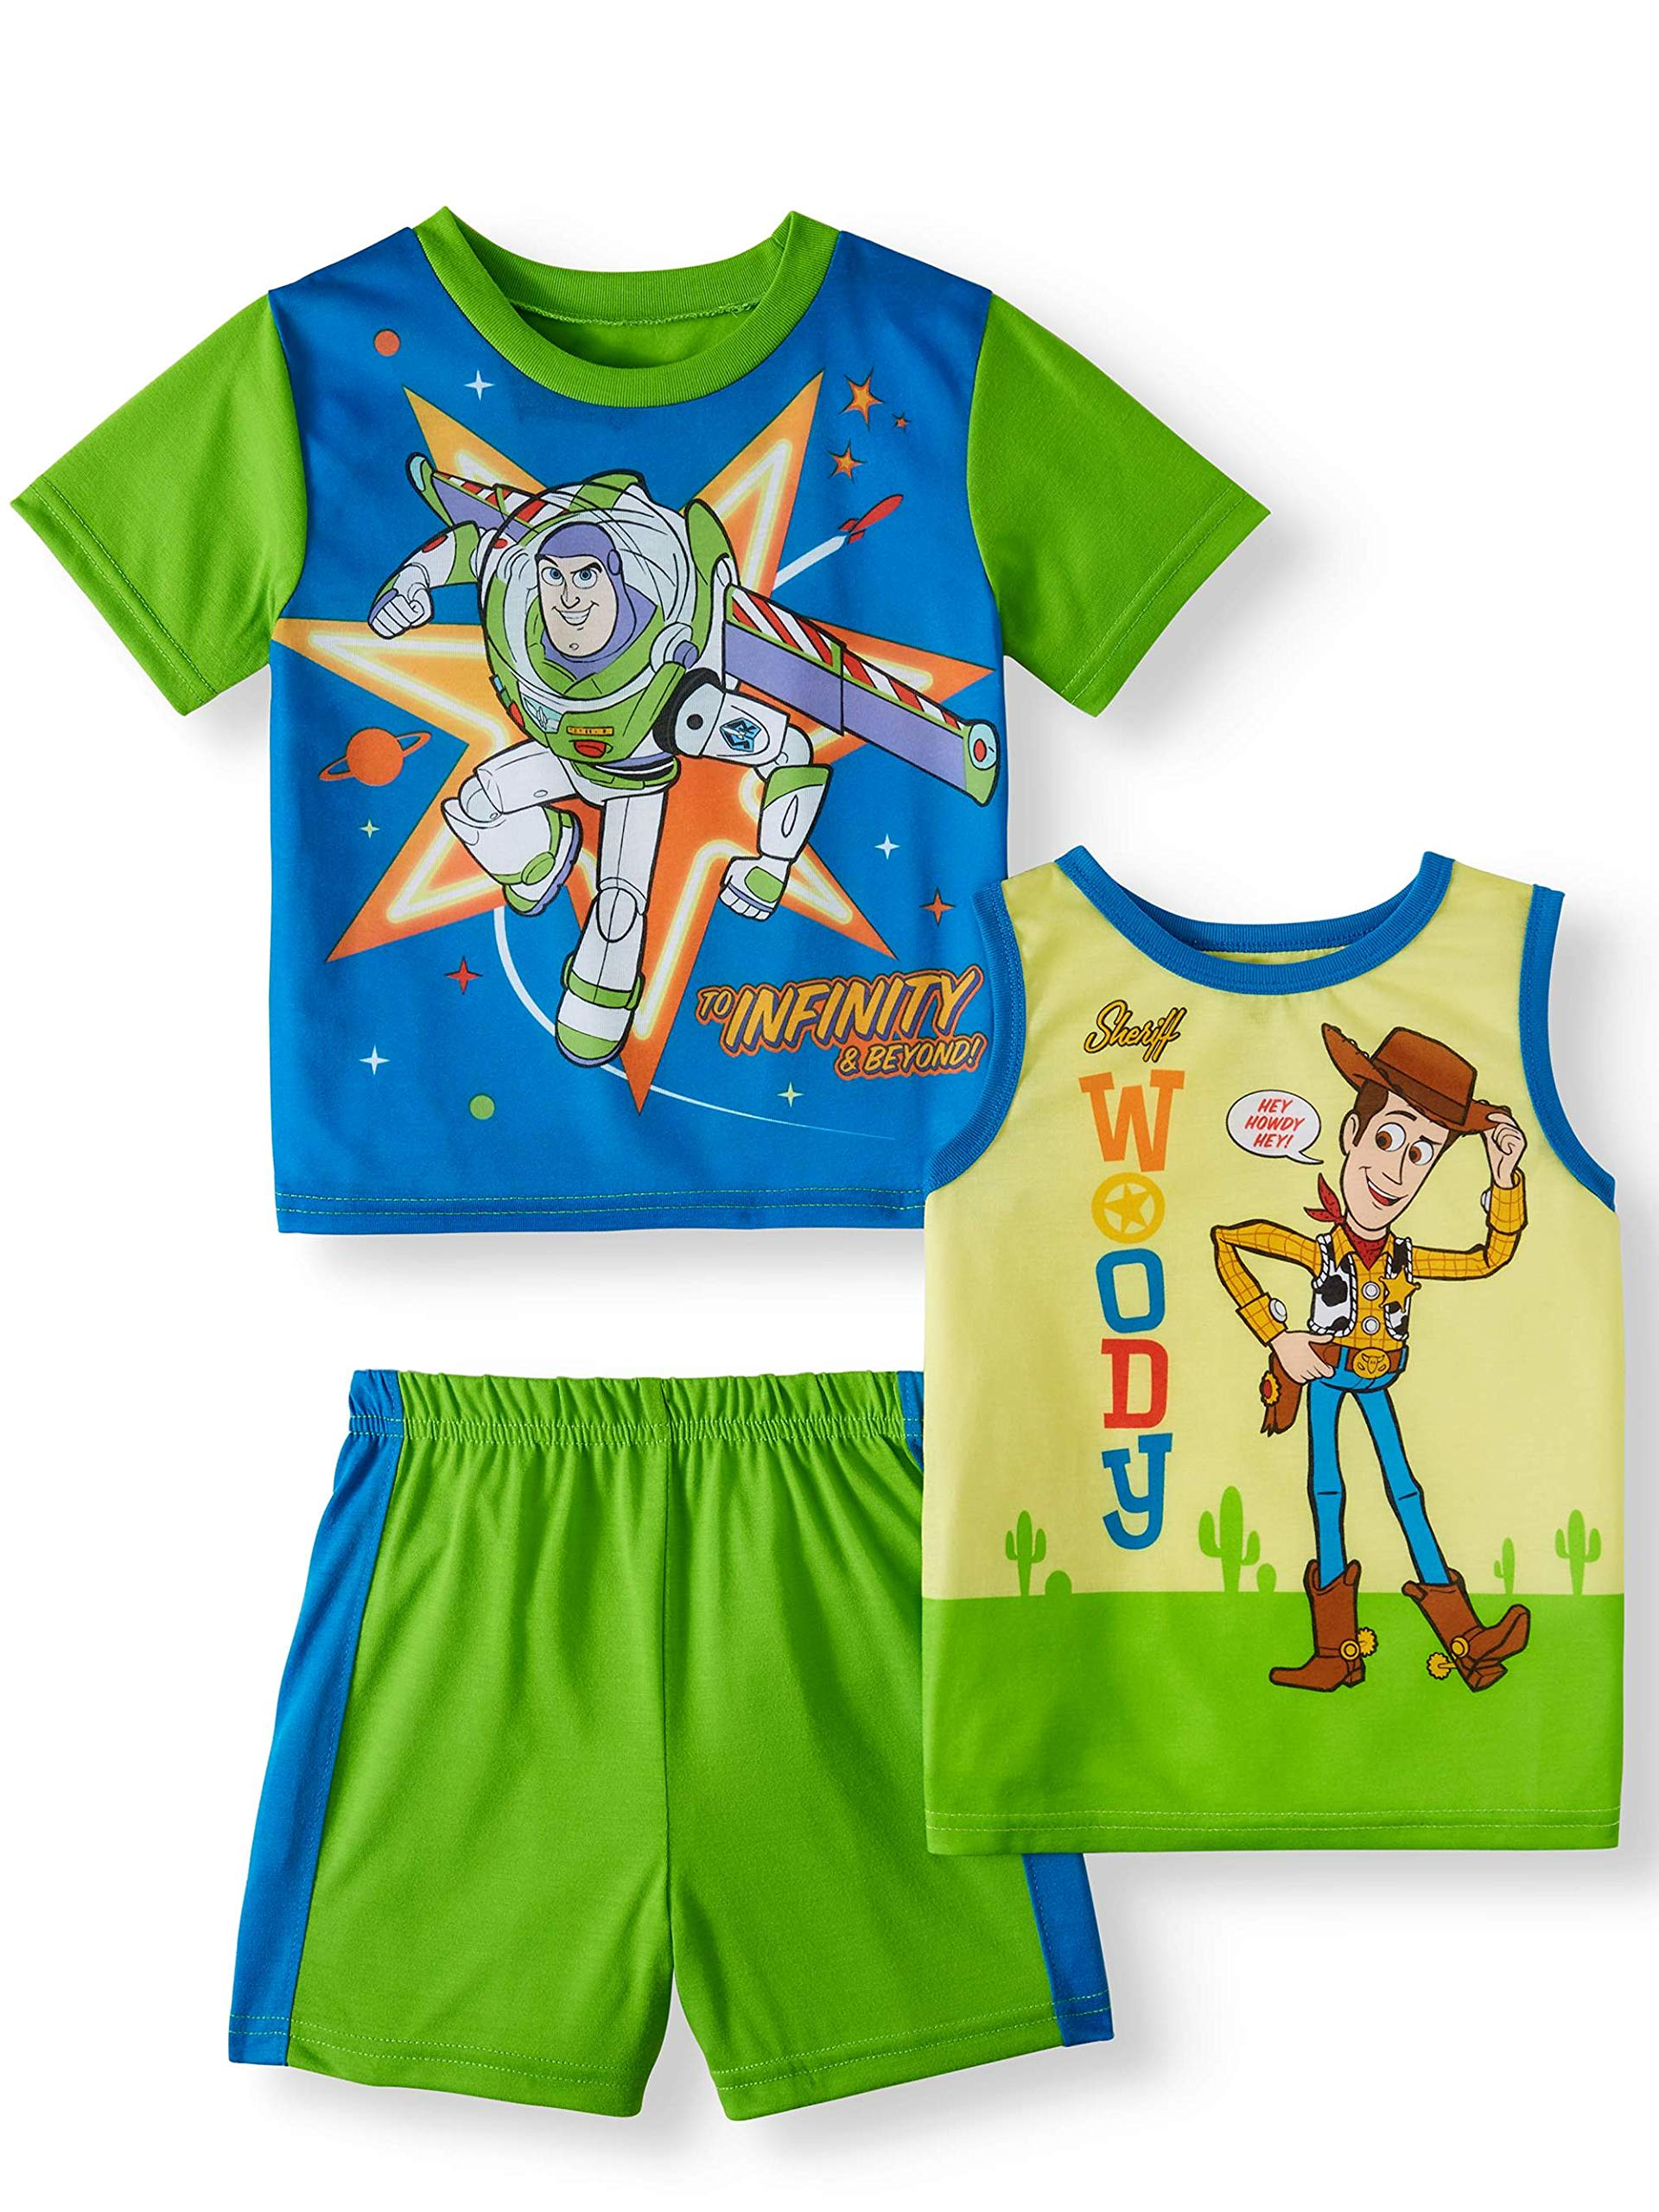 Toy Story 4 Little Boys' Three-Piece Pajama Short Set (5T) Blue/Green